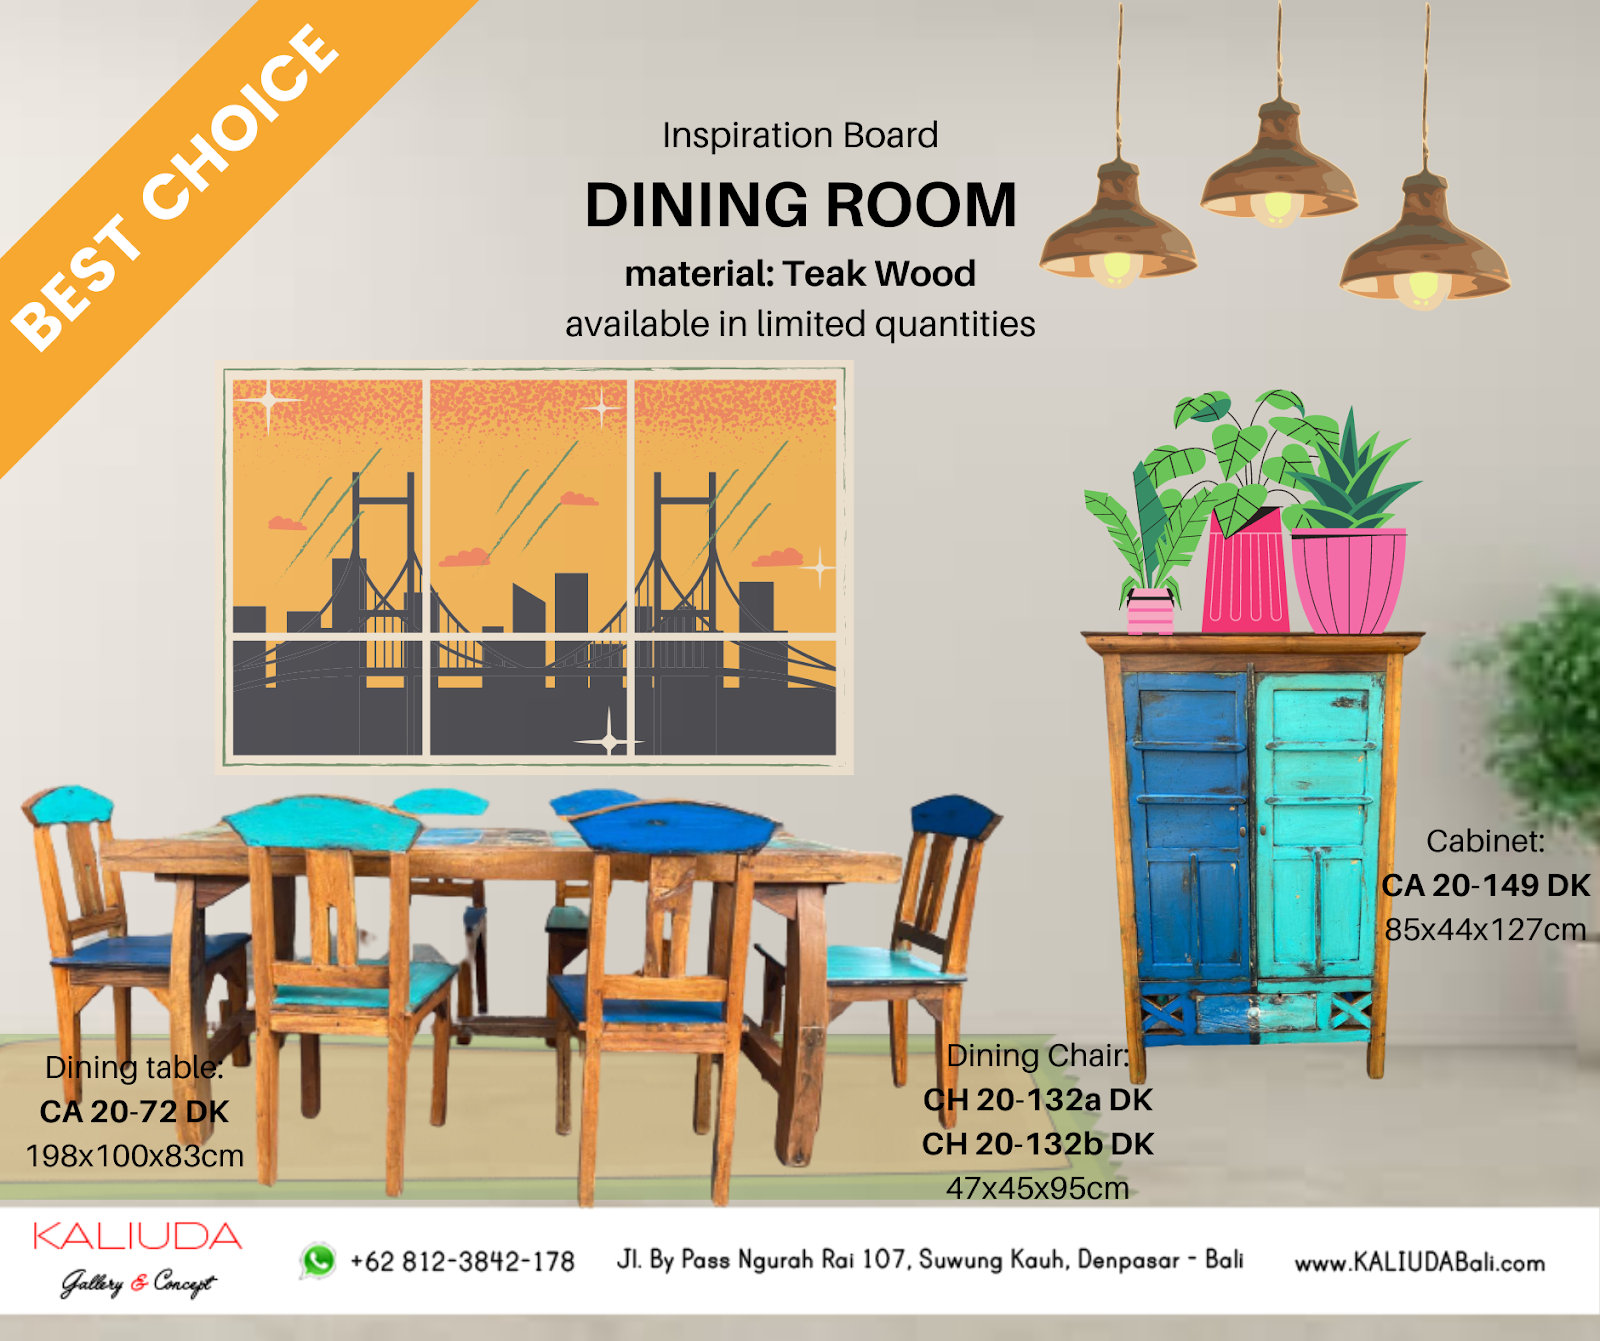 Inspiration Board by Kaliuda Gallery Bali Dining Room with 1 dining table, 6 chairs, and 1 cabinet